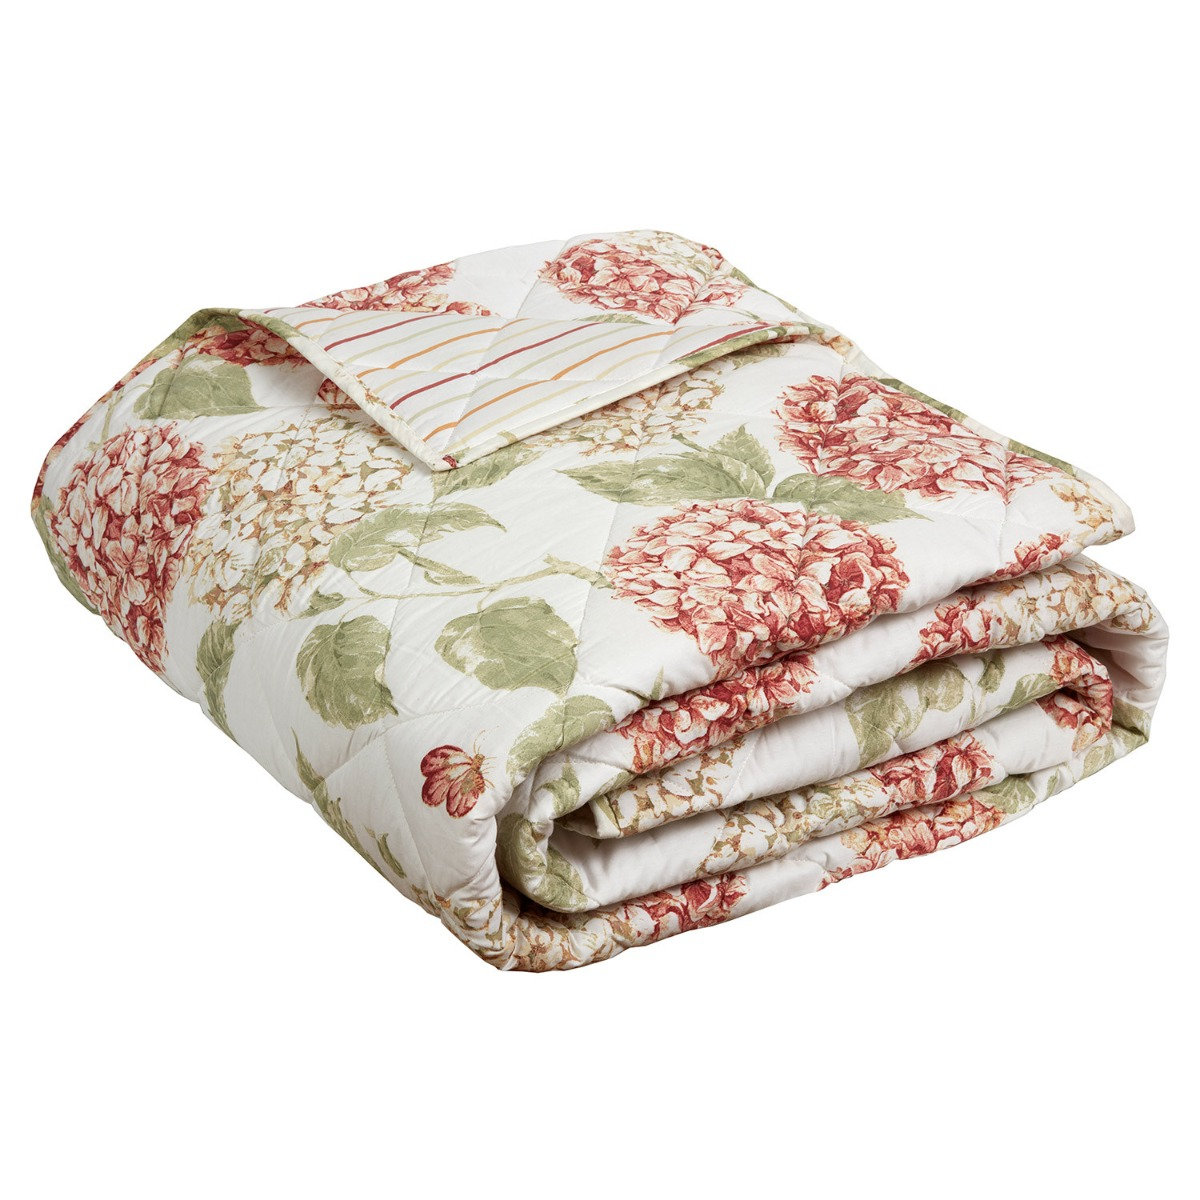 Bloomsbury Autumn Quilted Throw